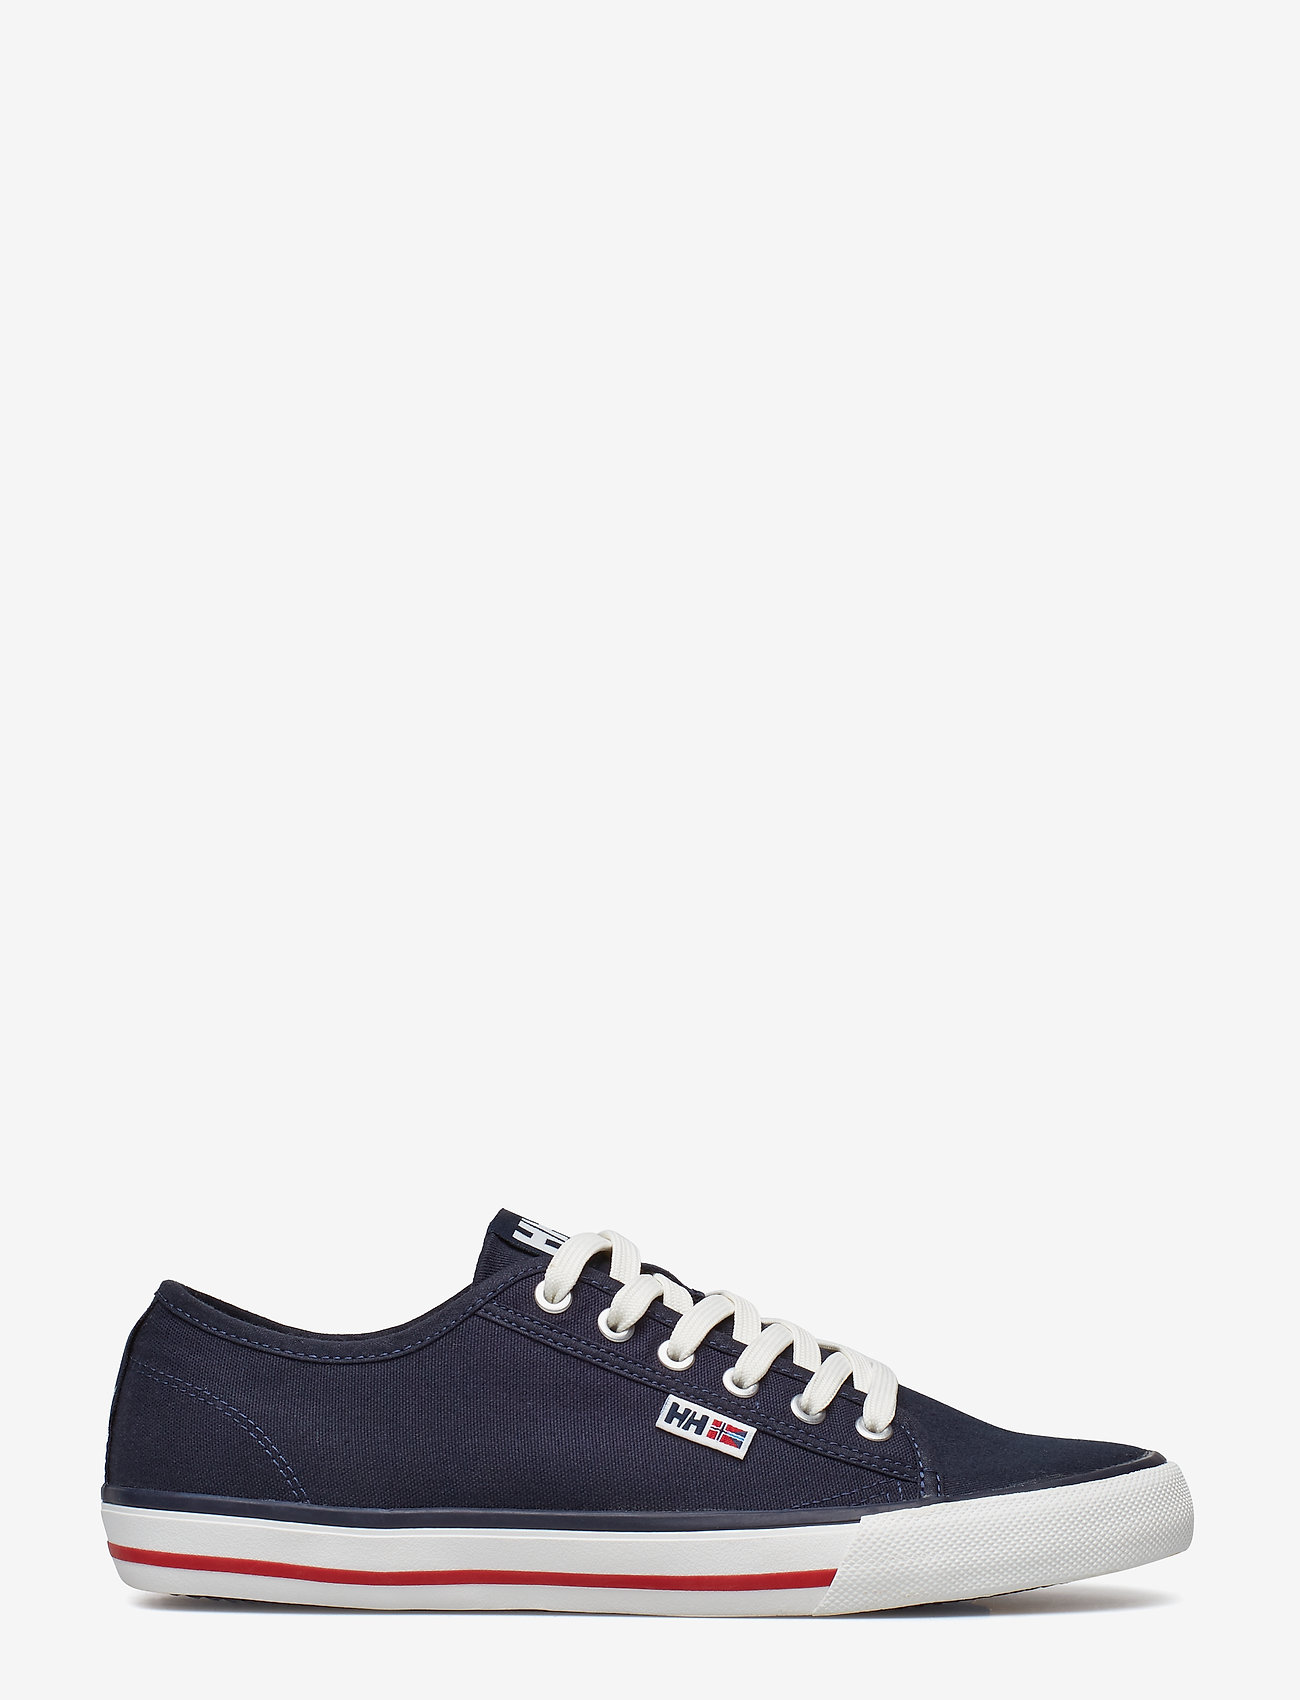 Fjord Canvas Shoe V2 (Navy/red/off White) - Helly Hansen SvQRnU